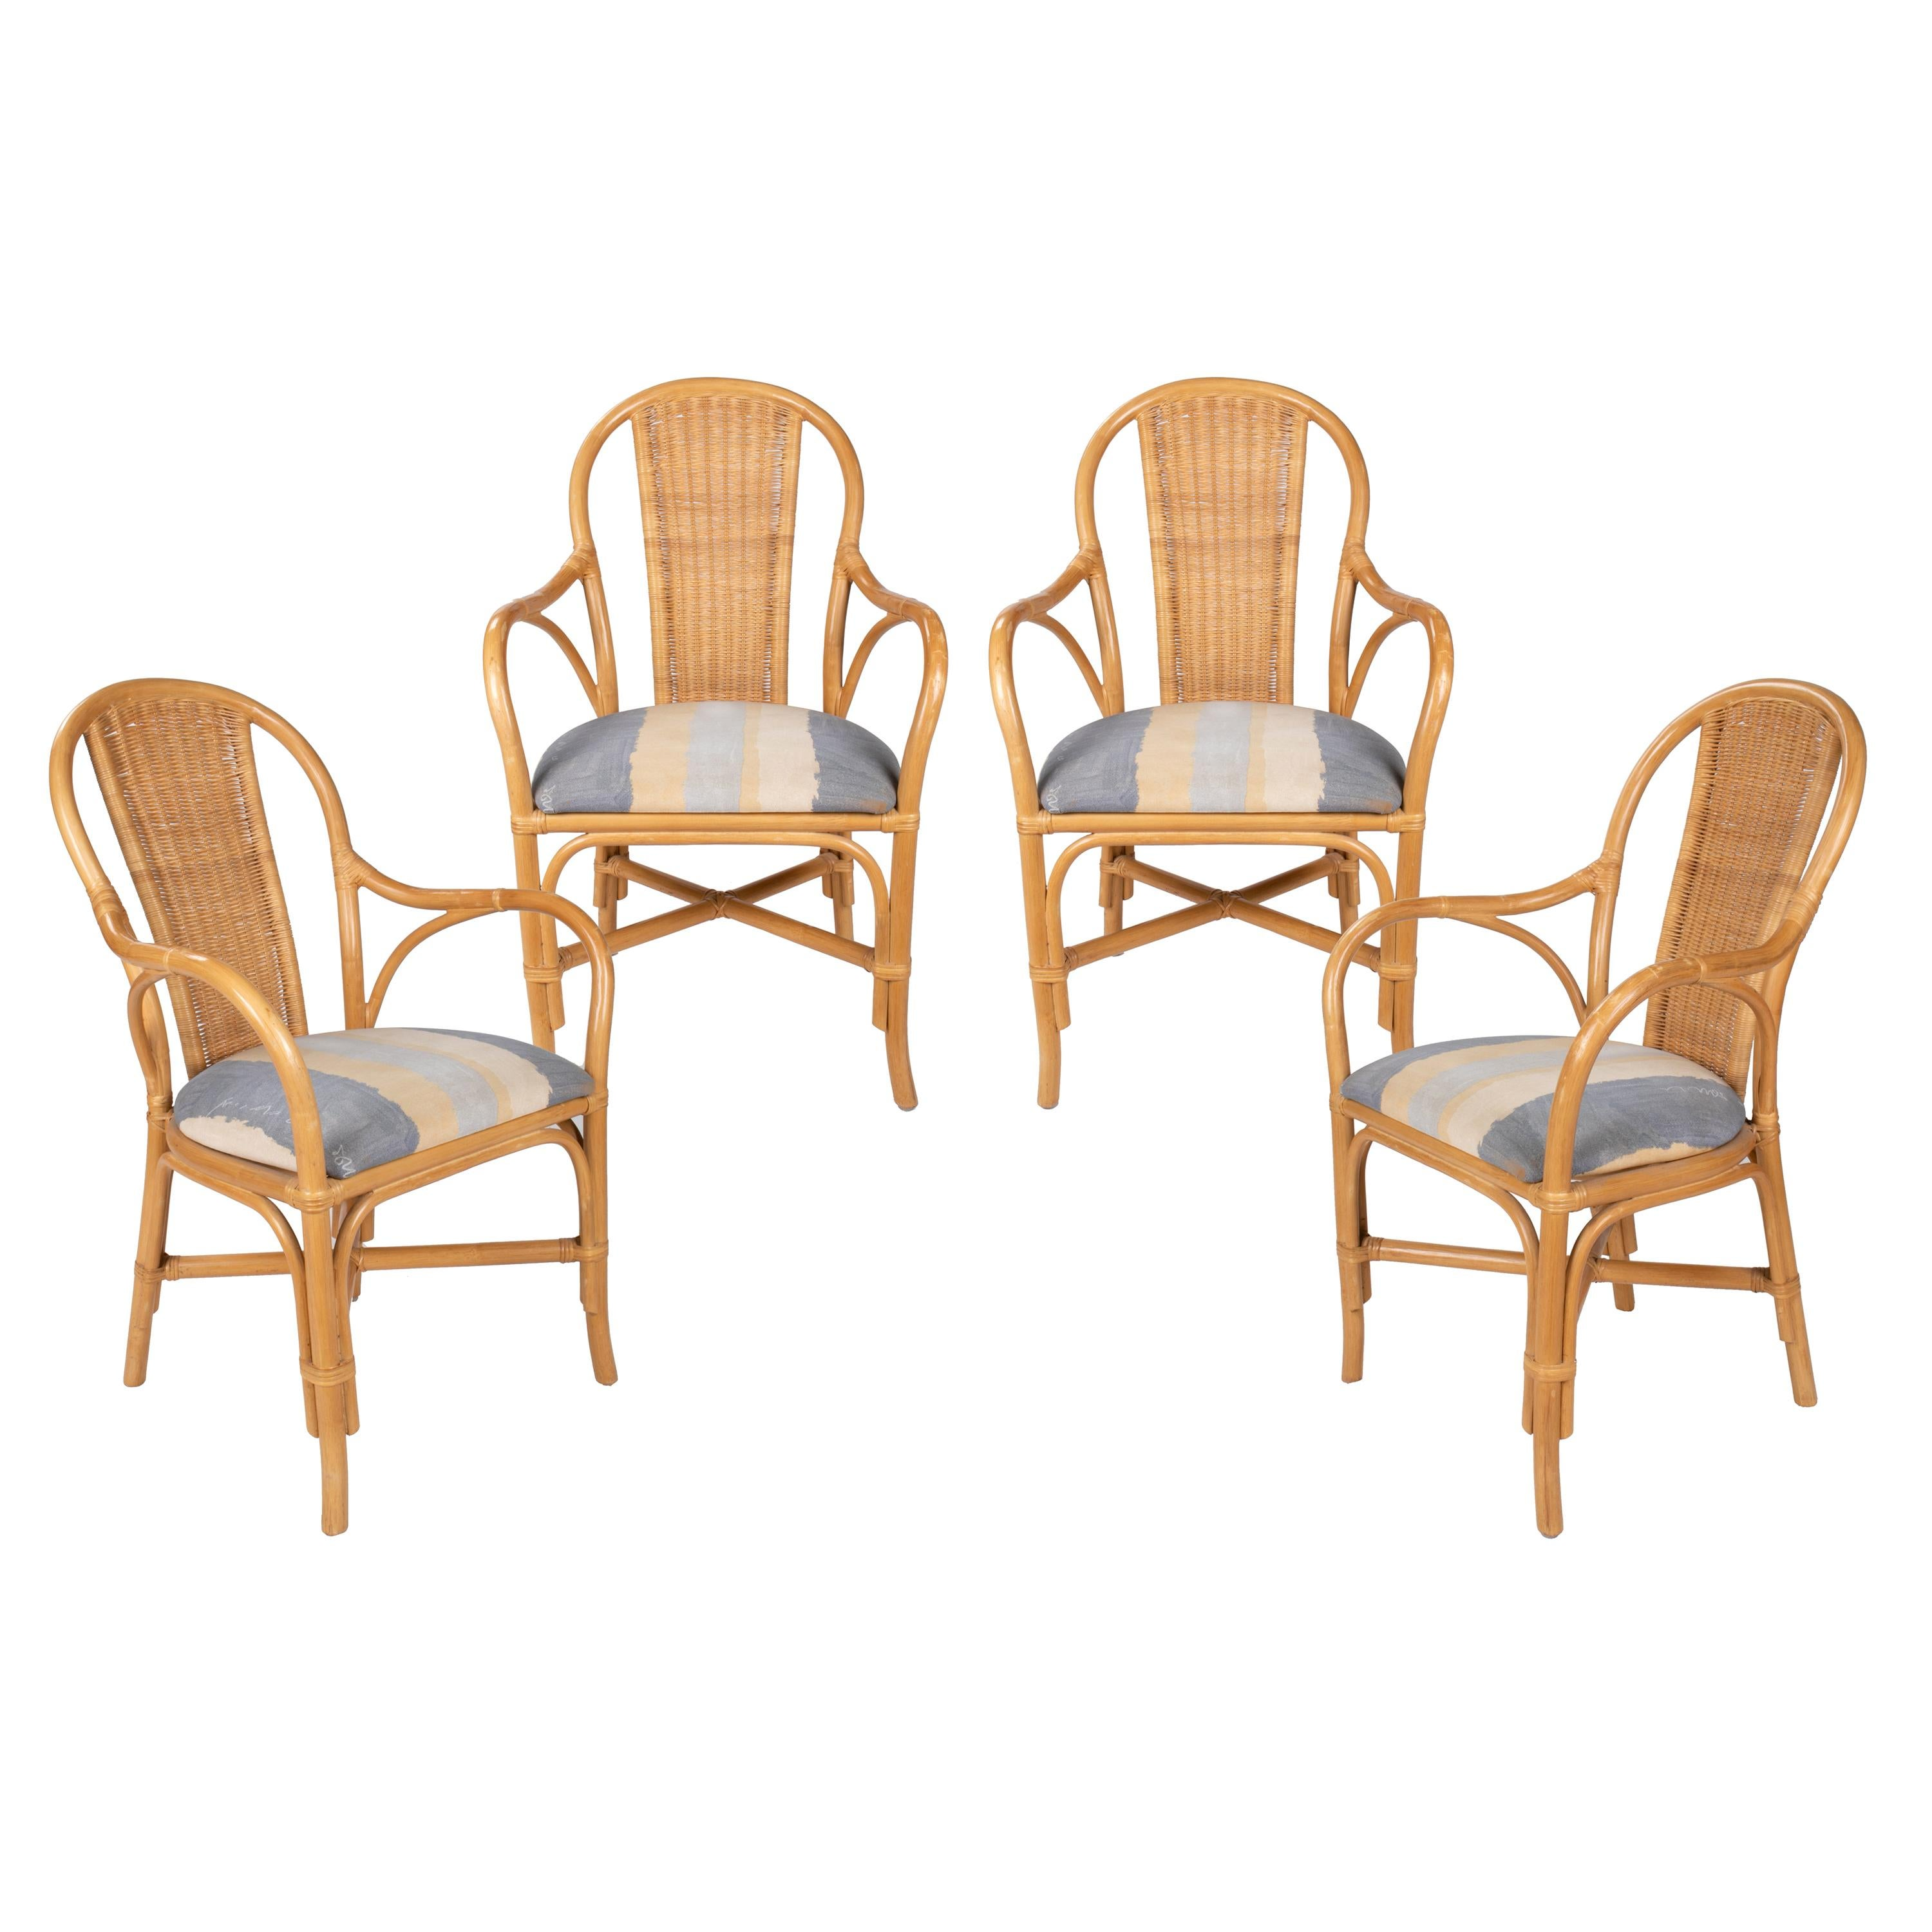 1980s Set of Four Spanish Bamboo and Wicker Upholstered Armchairs